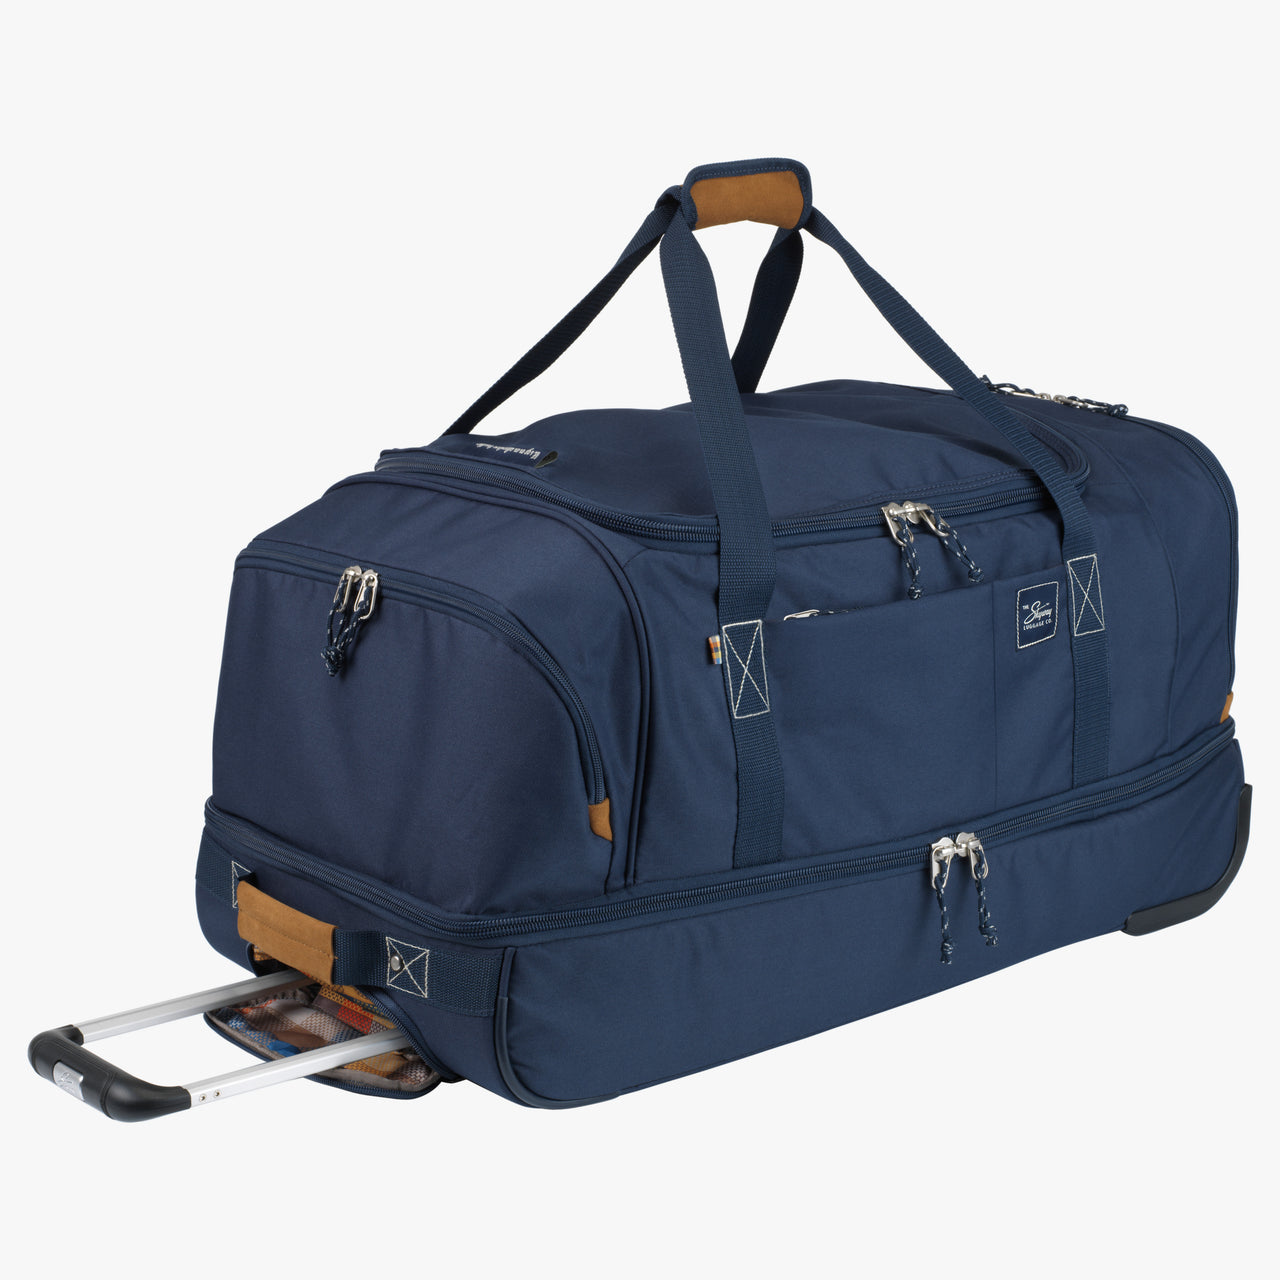 Whidbey Large Rolling Duffel in Blue